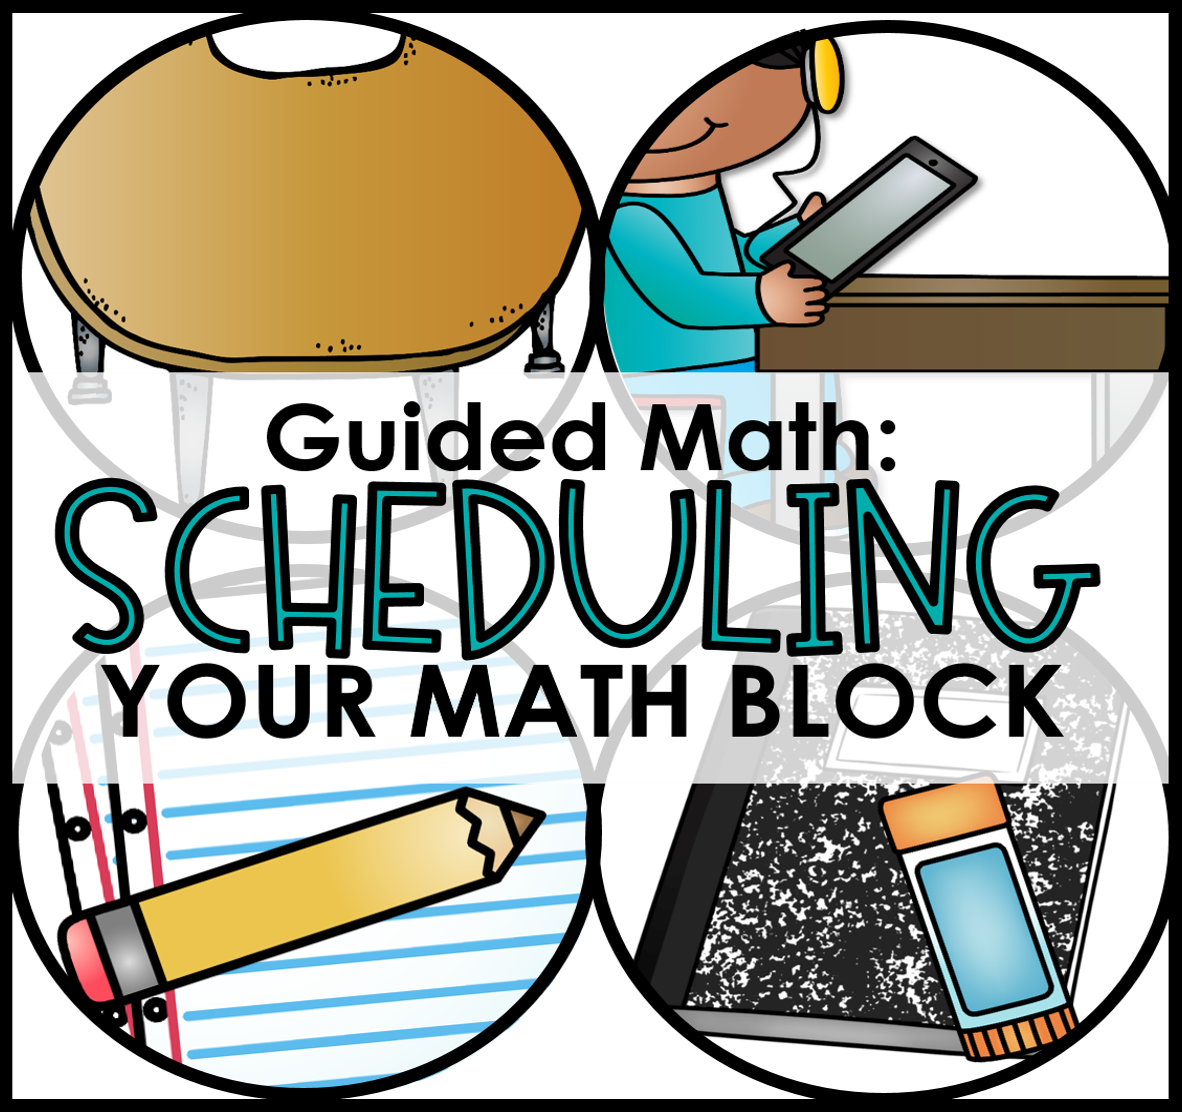 Big book center clipart vector black and white Scheduling Your Guided Math Block - Tunstall's Teaching Tidbits vector black and white